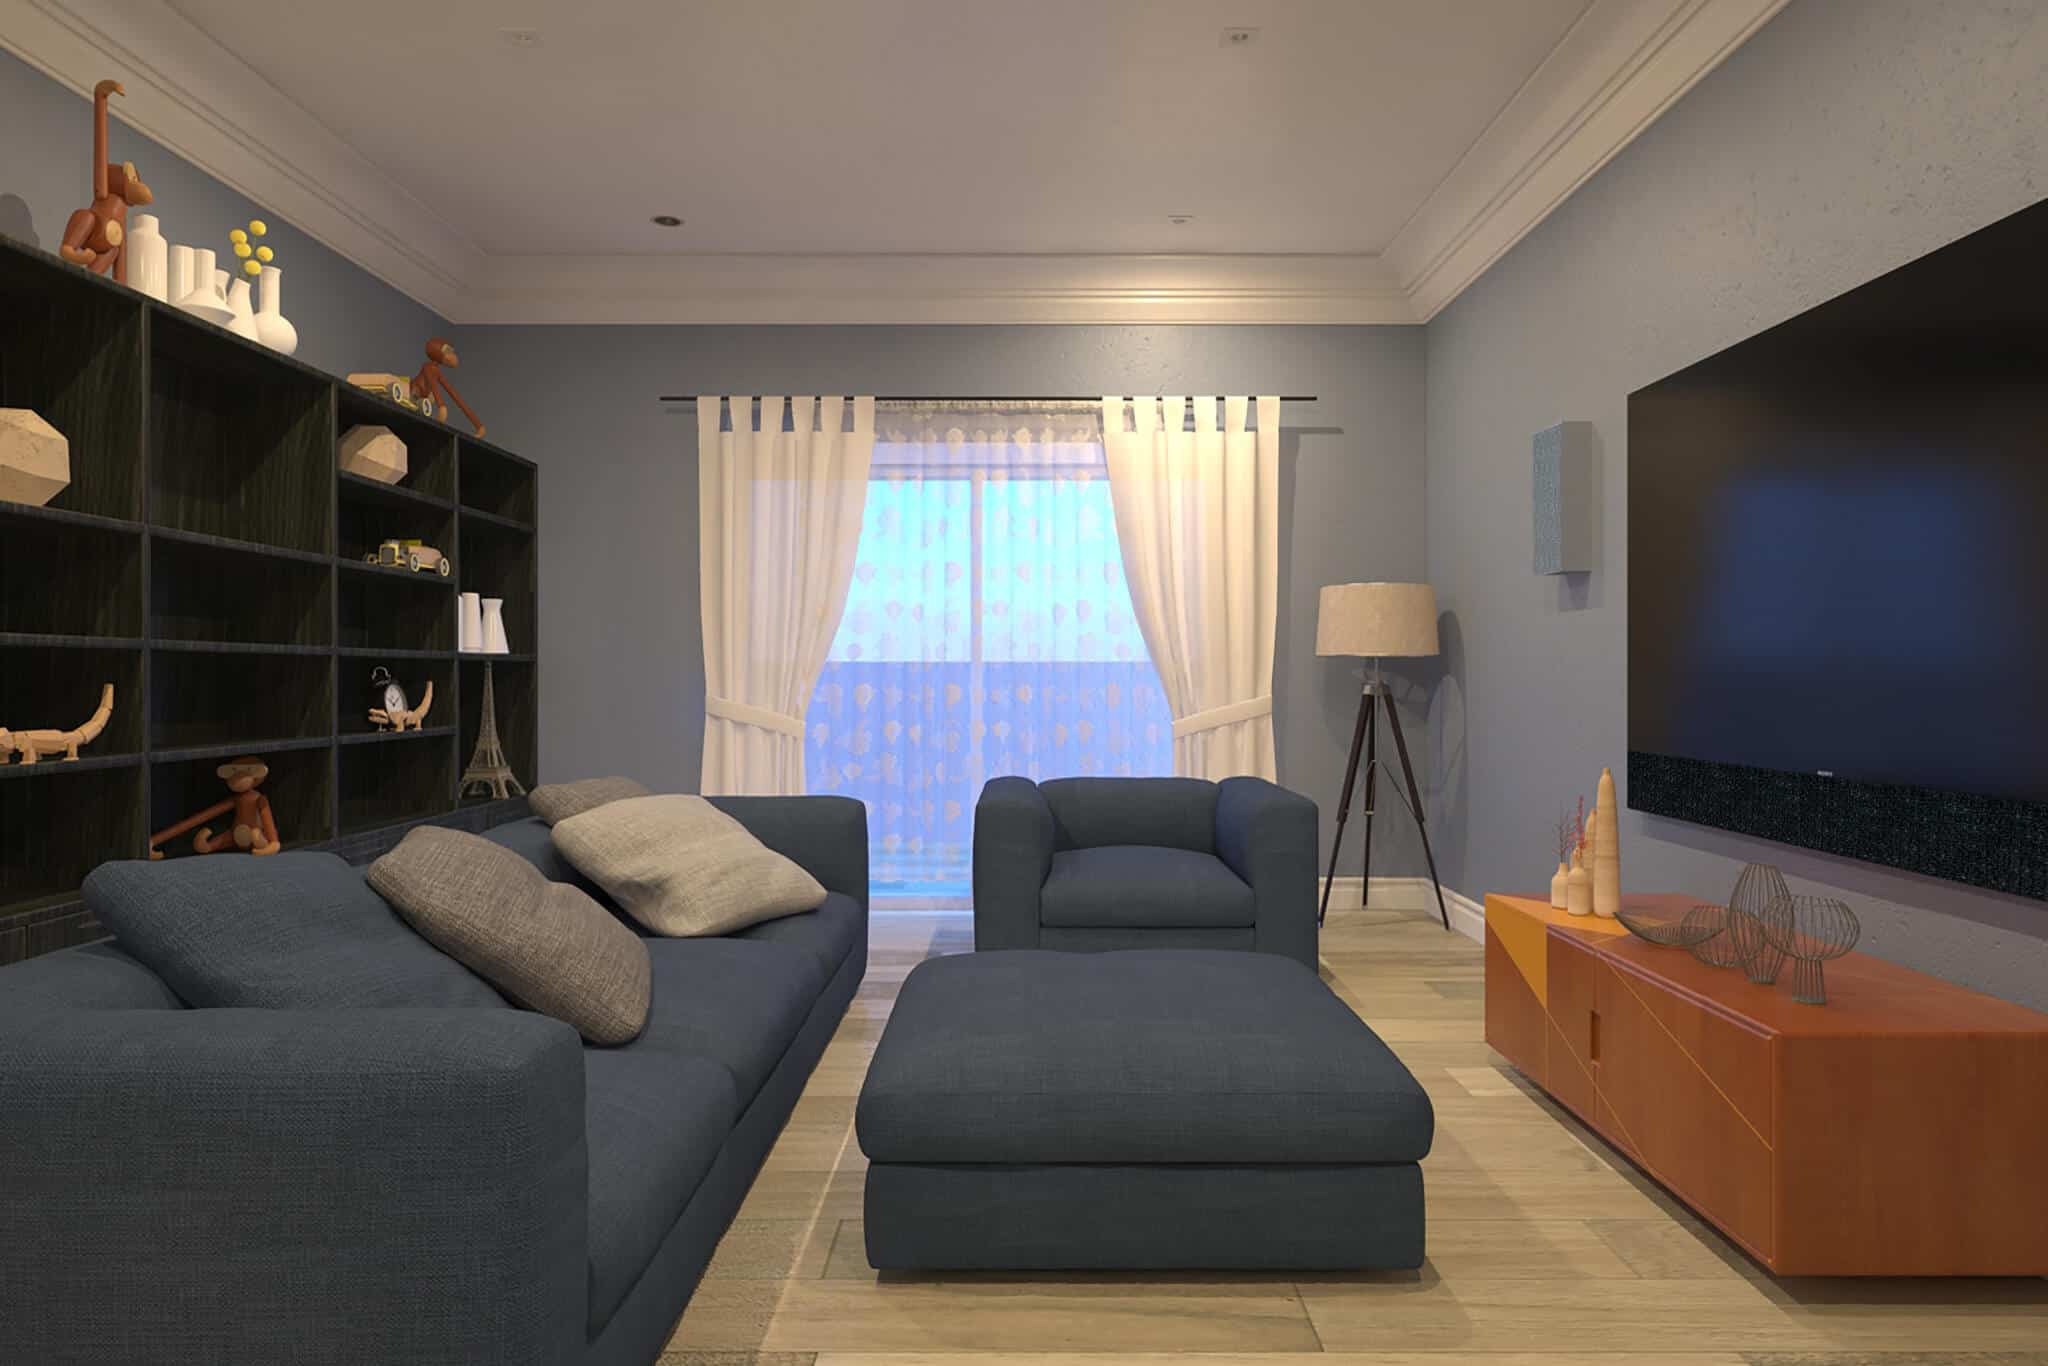 Chelsea Living Room Surround Sound Installation